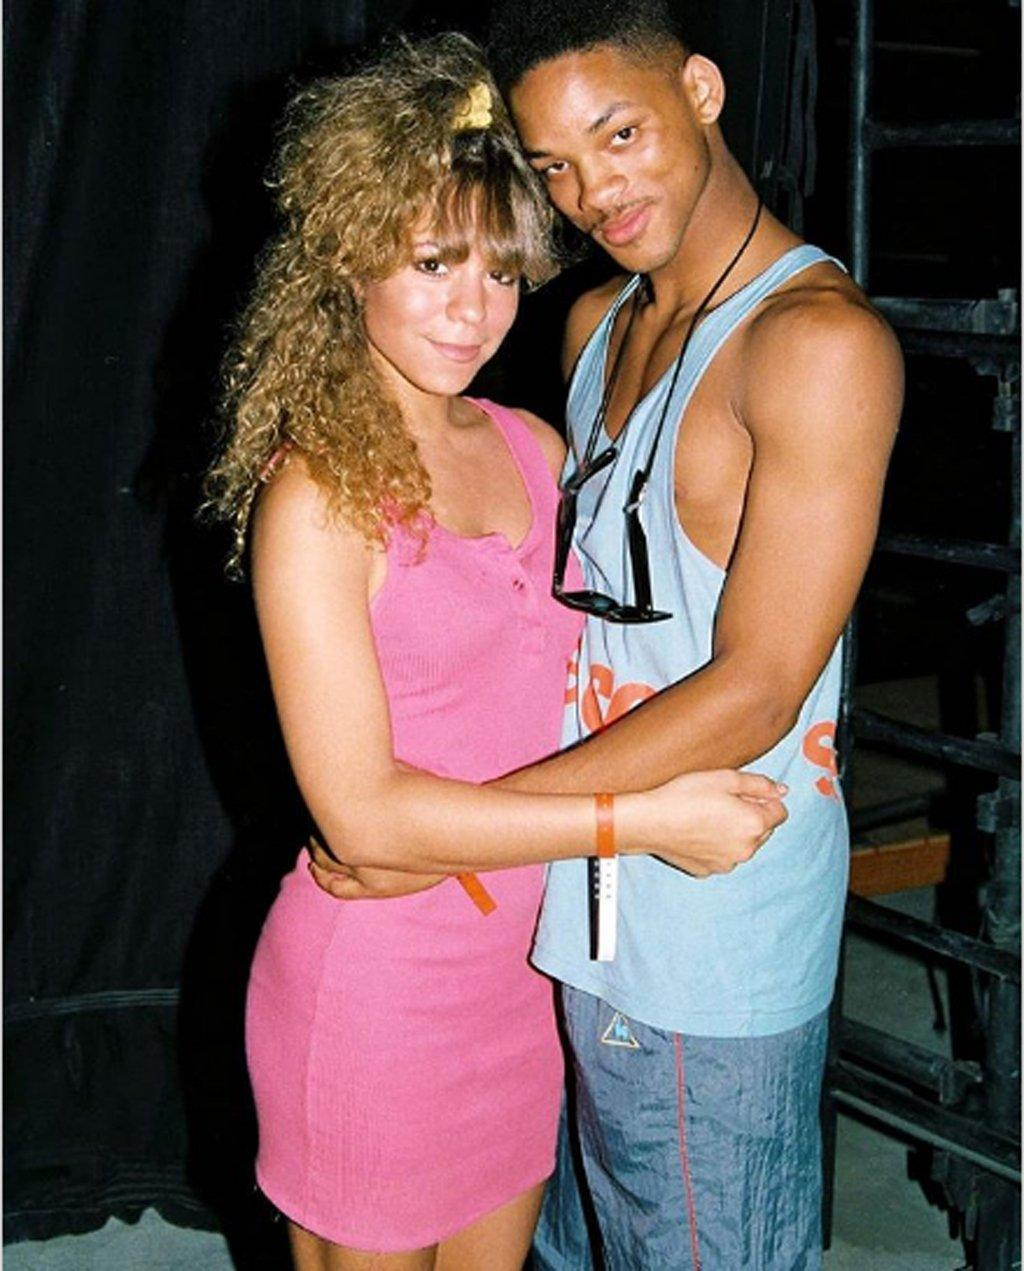 Top Iconic 90s Moments From Your Celebrities' Lives You've Never Seen